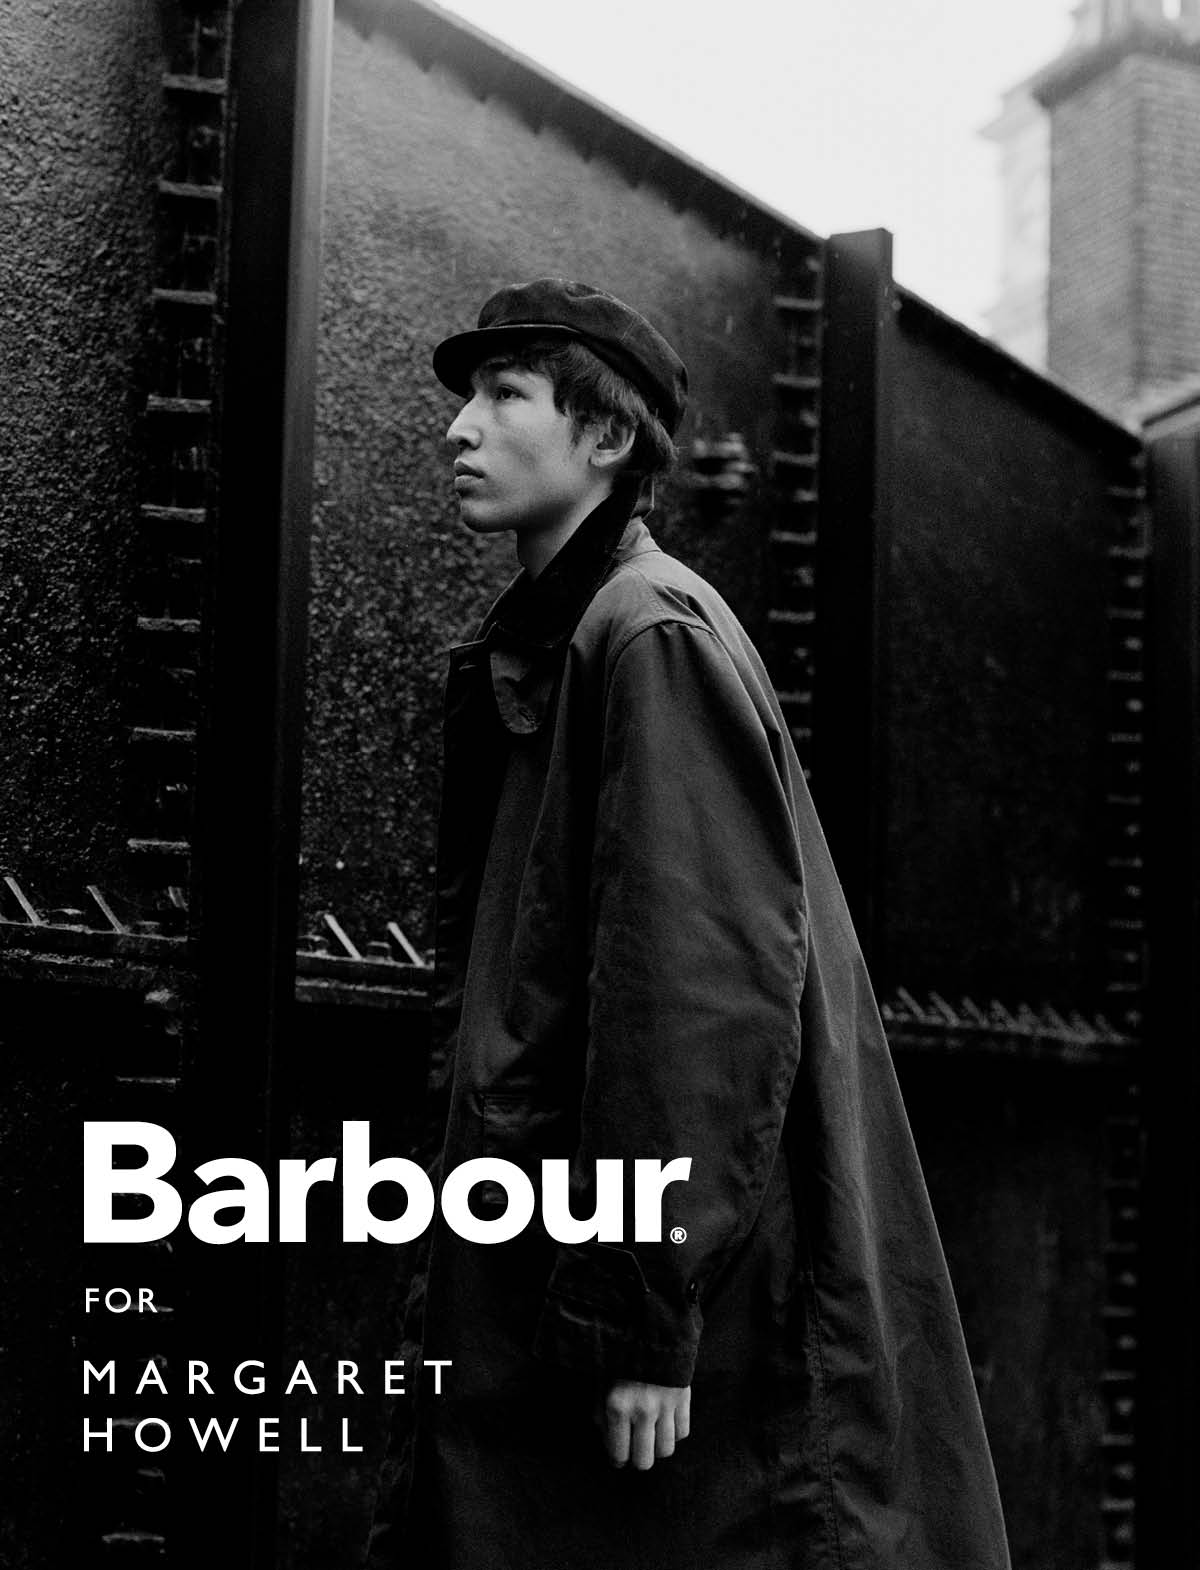 BARBOUR FOR MARGARET HOWELL